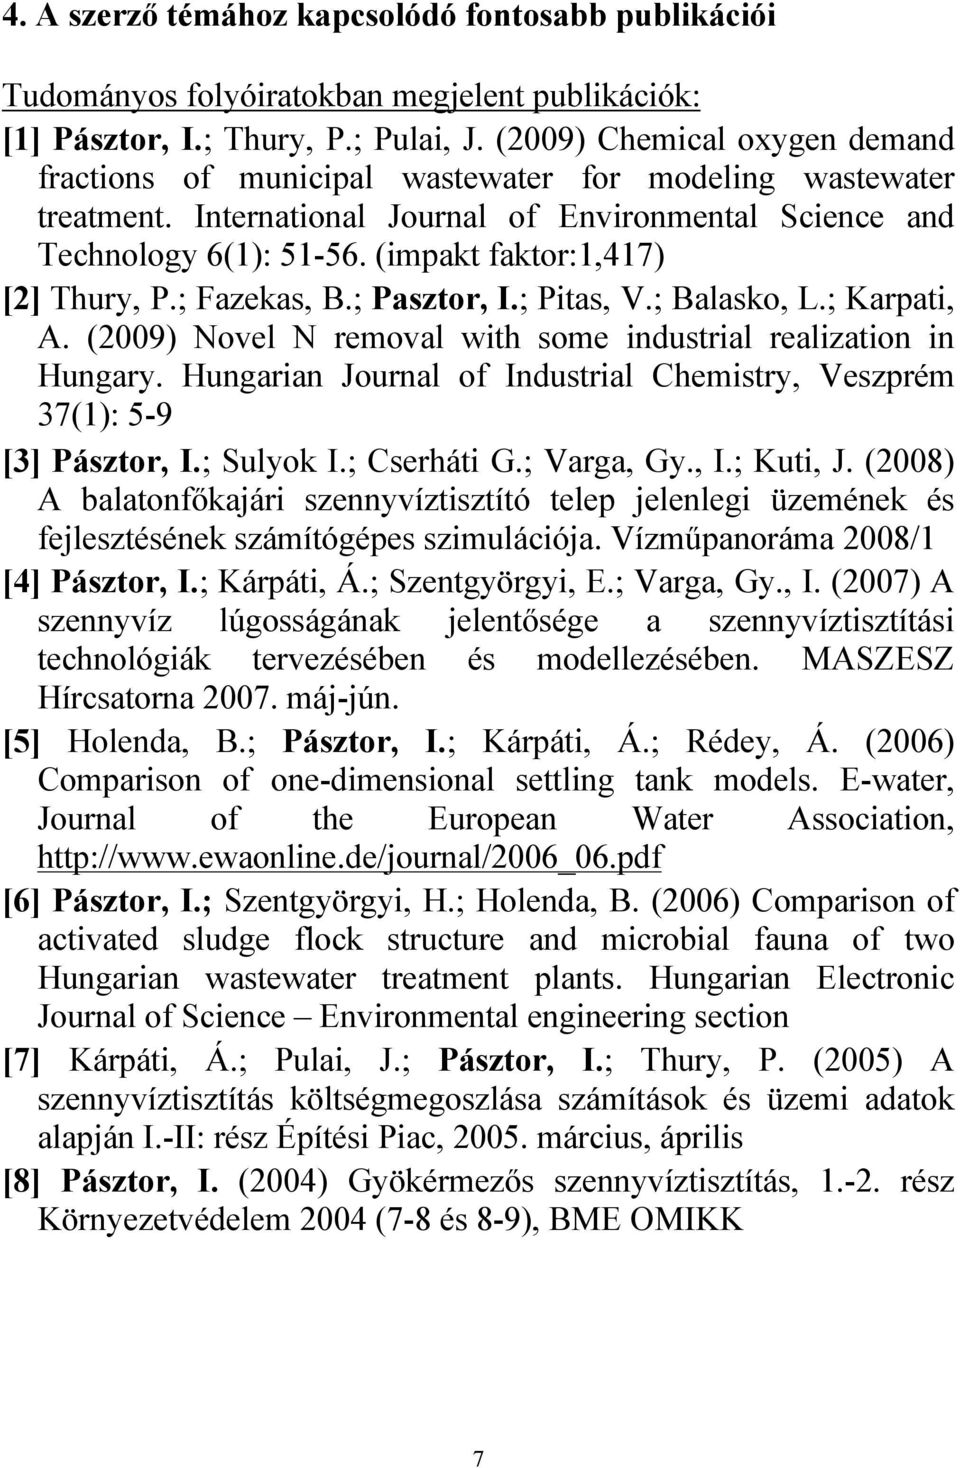 (impakt faktor:1,417) [2] Thury, P.; Fazekas, B.; Pasztor, I.; Pitas, V.; Balasko, L.; Karpati, A. (2009) Novel N removal with some industrial realization in Hungary.